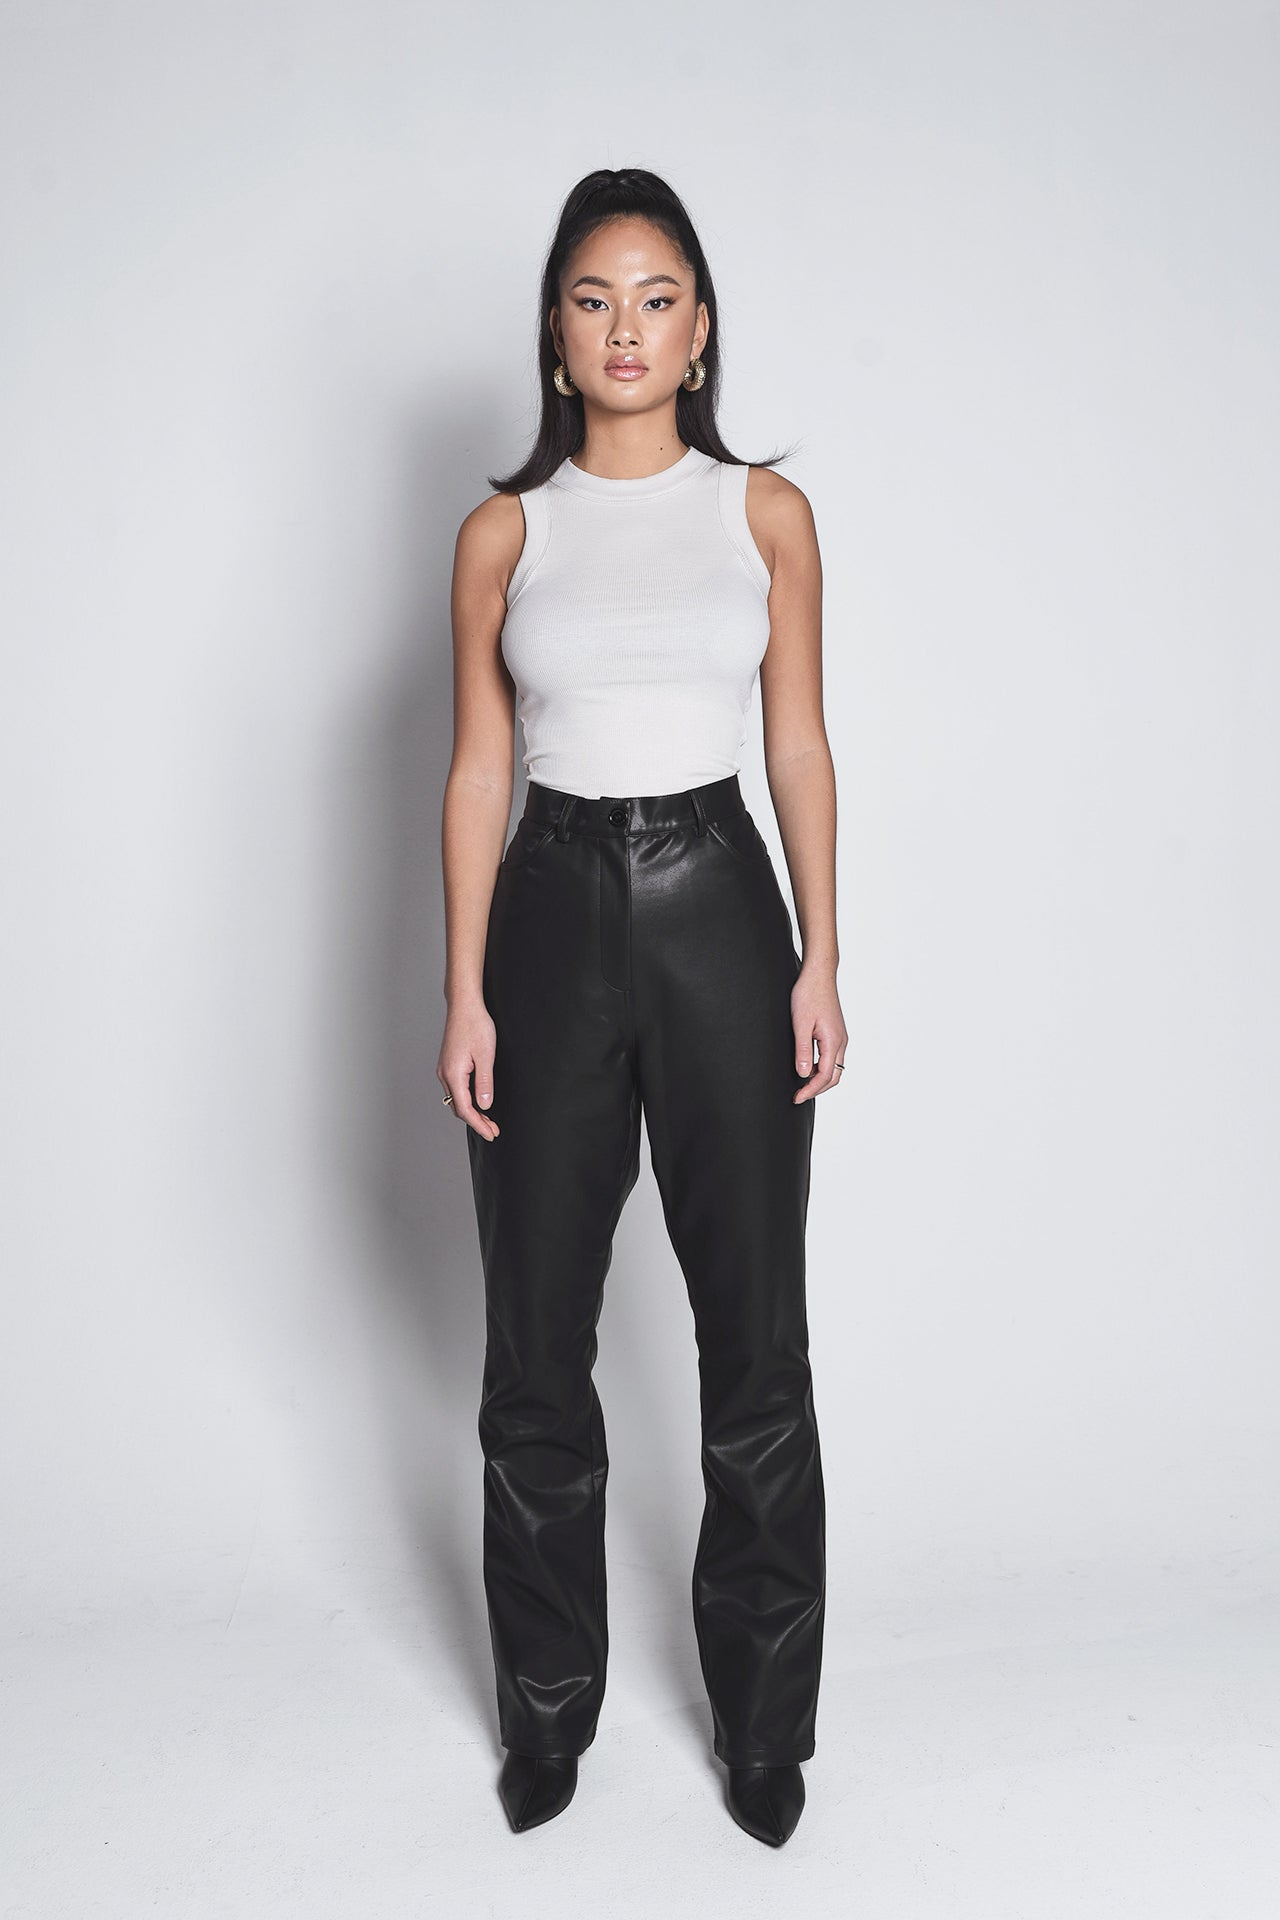 FAUX LEATHER PANT - black